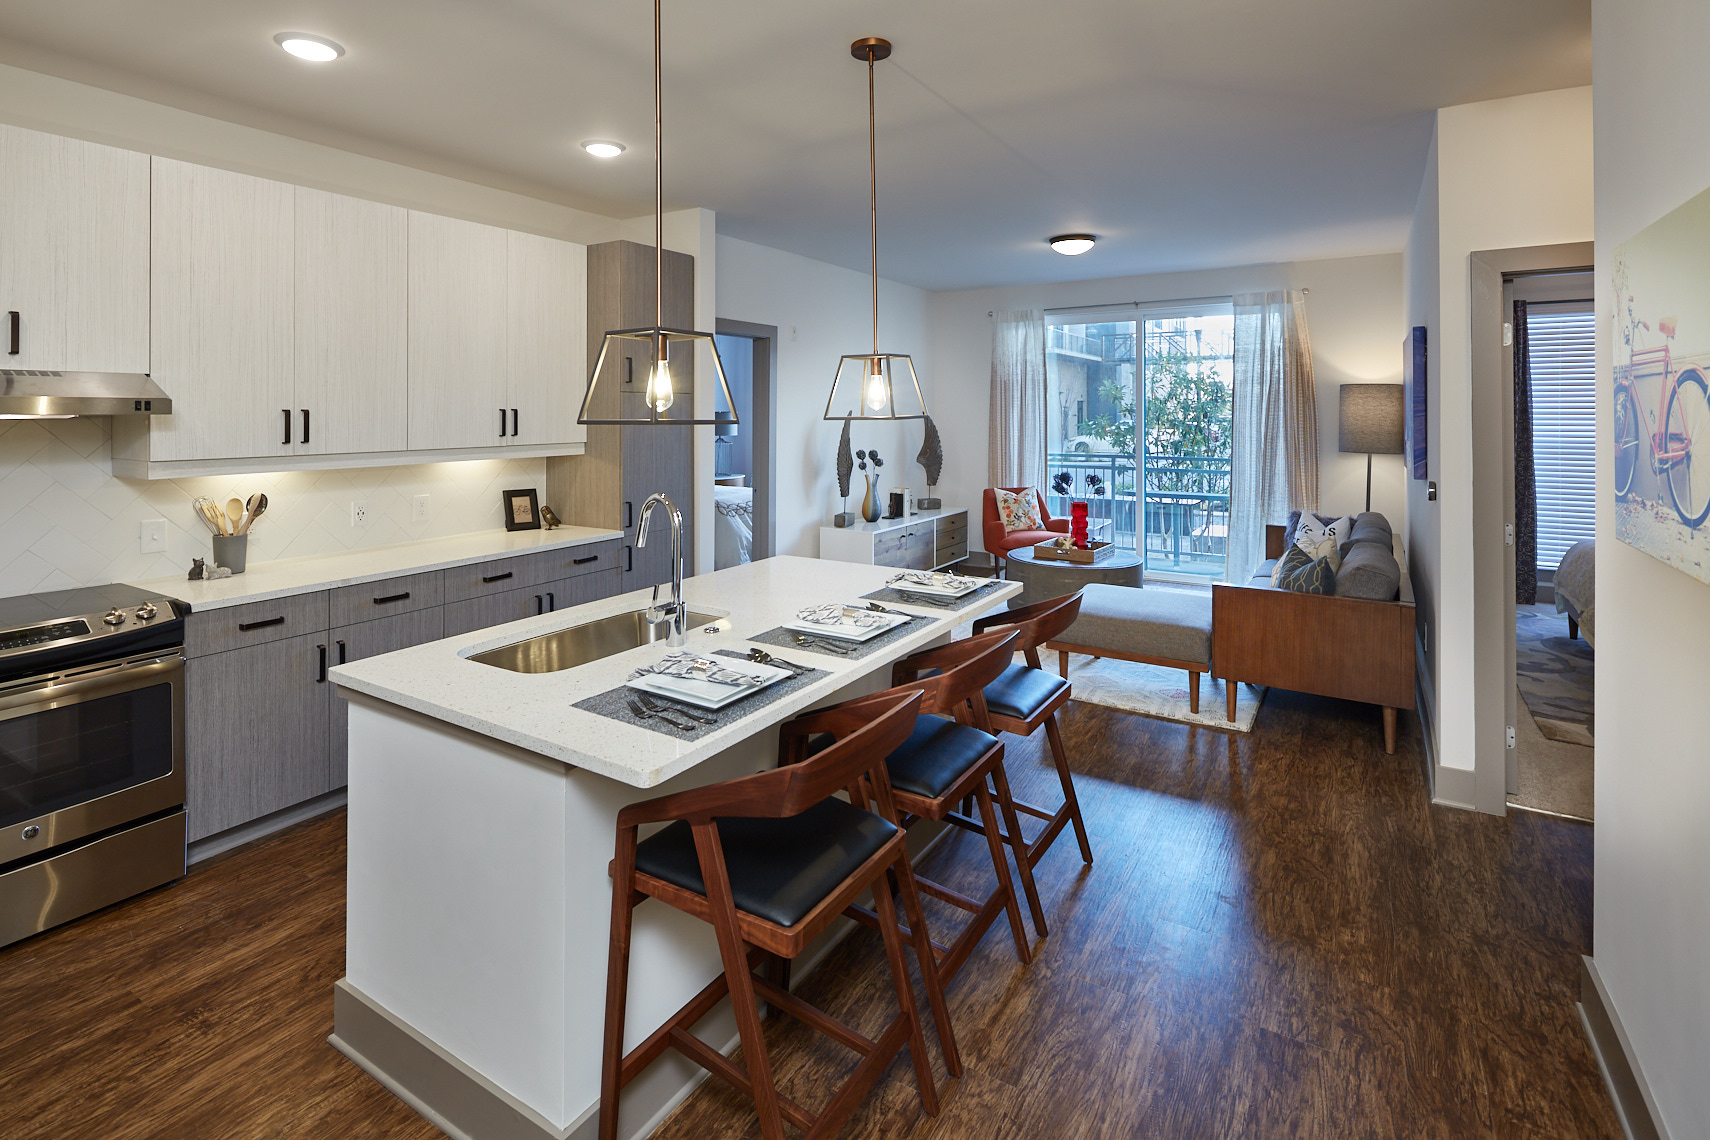 Broadstone 8 South, Nashville TN - Alliance Residential / Lord Aeck Sargent, Atlanta GA